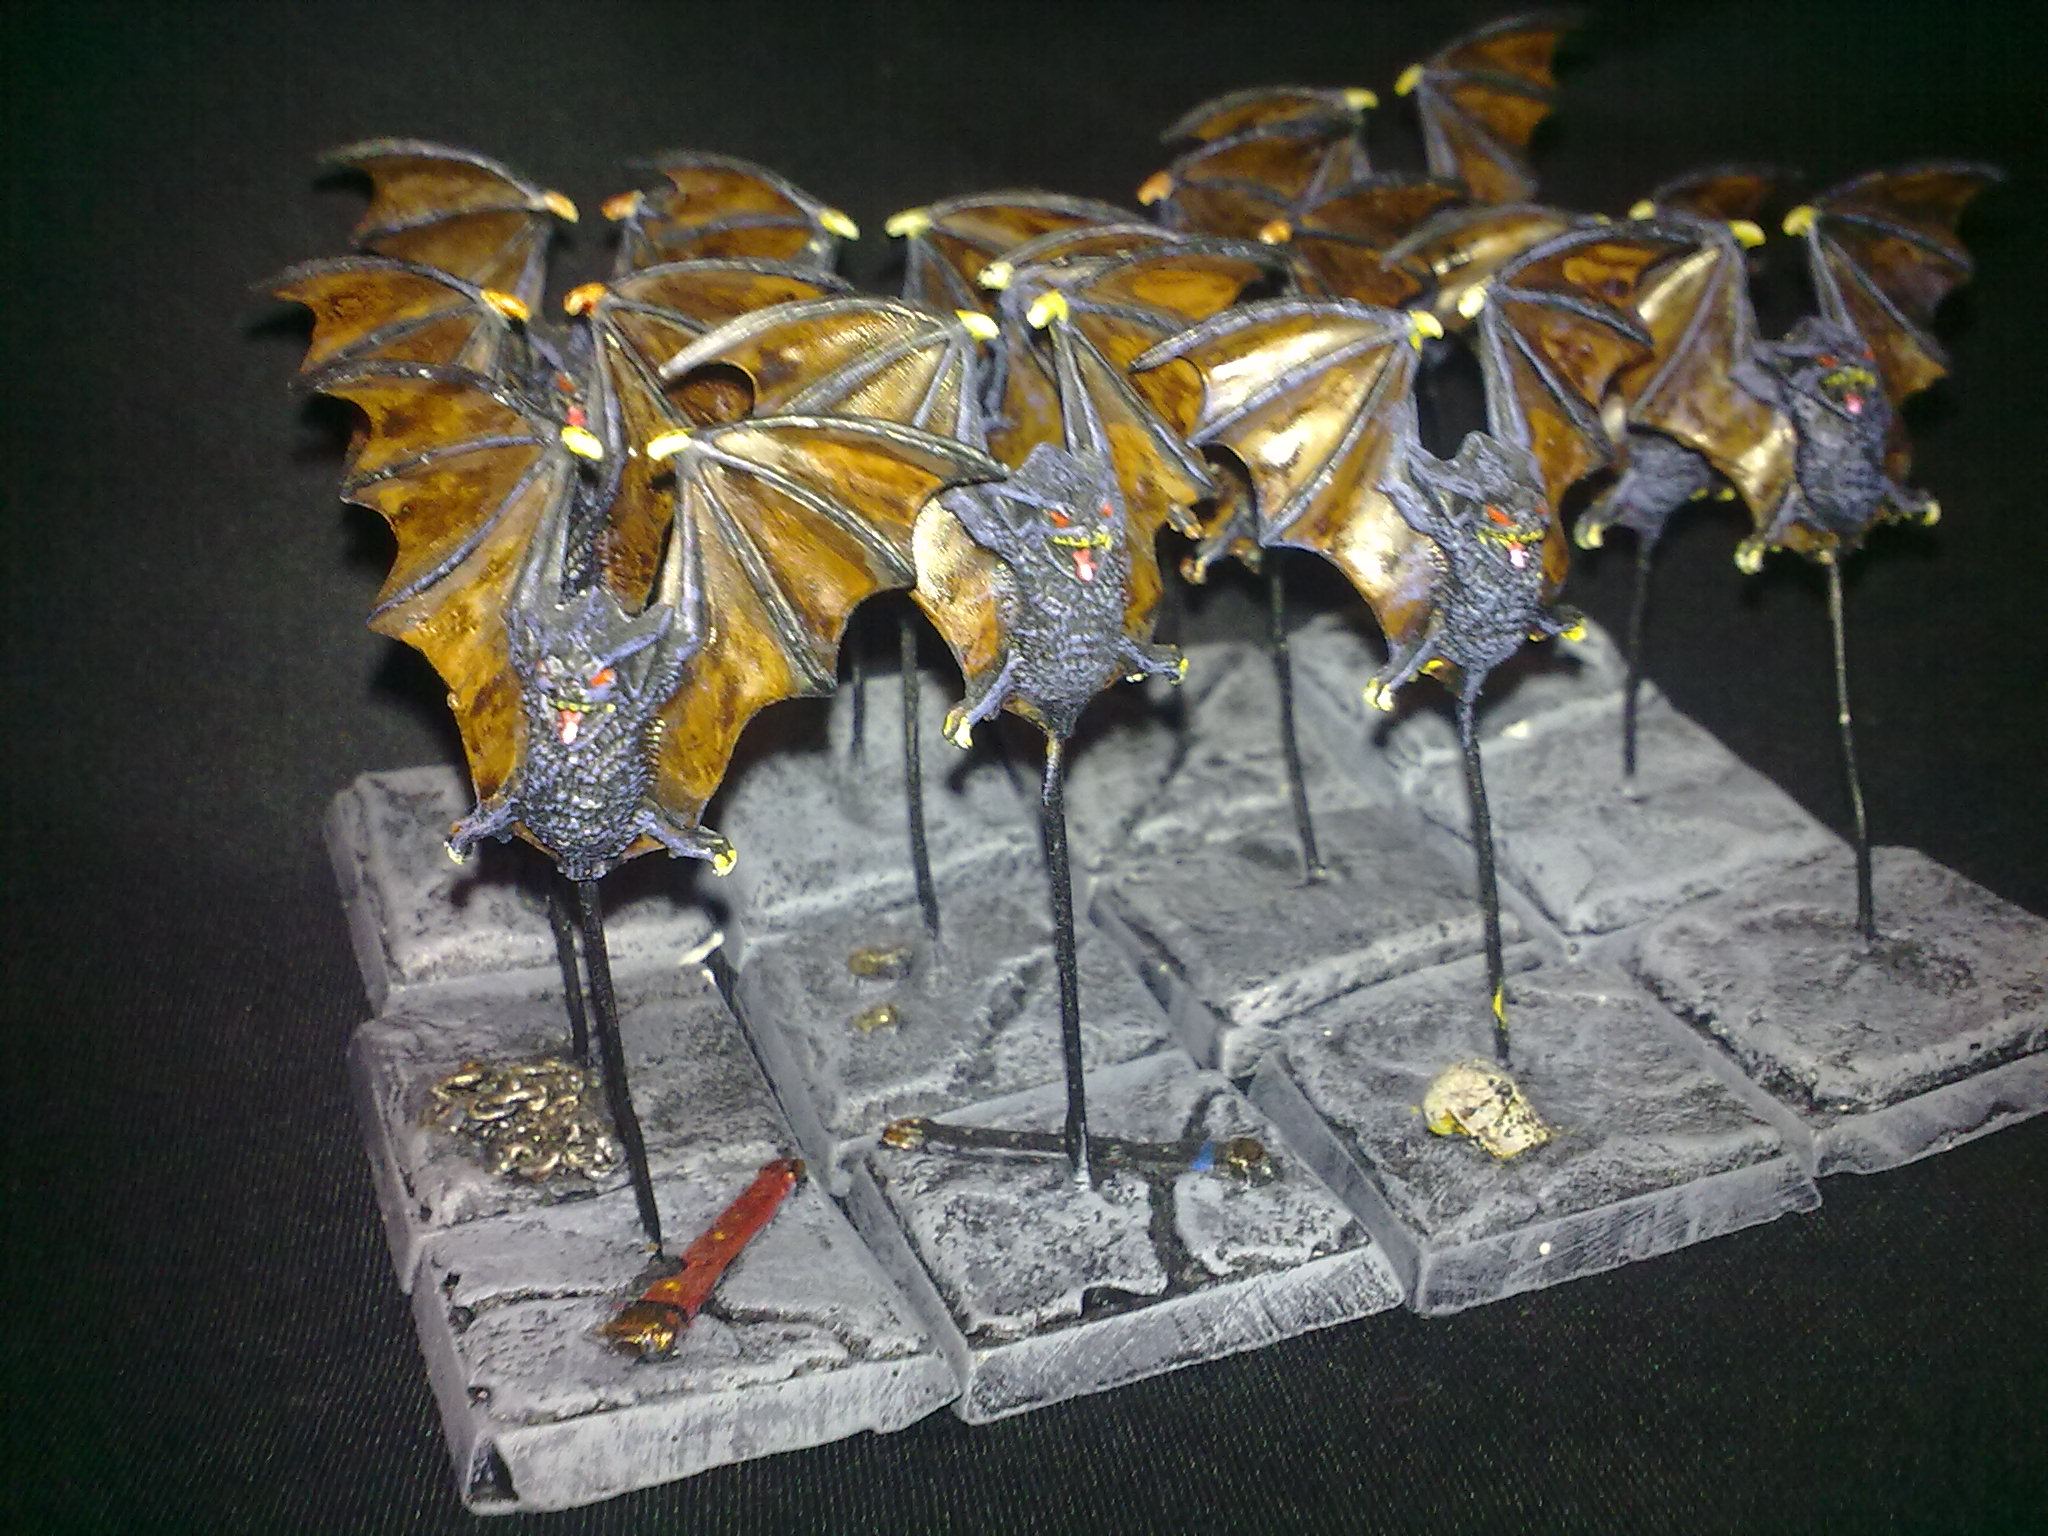 Giant Bats, painted by Questing Knight. Particularly proud of the scenic flagstone bases!